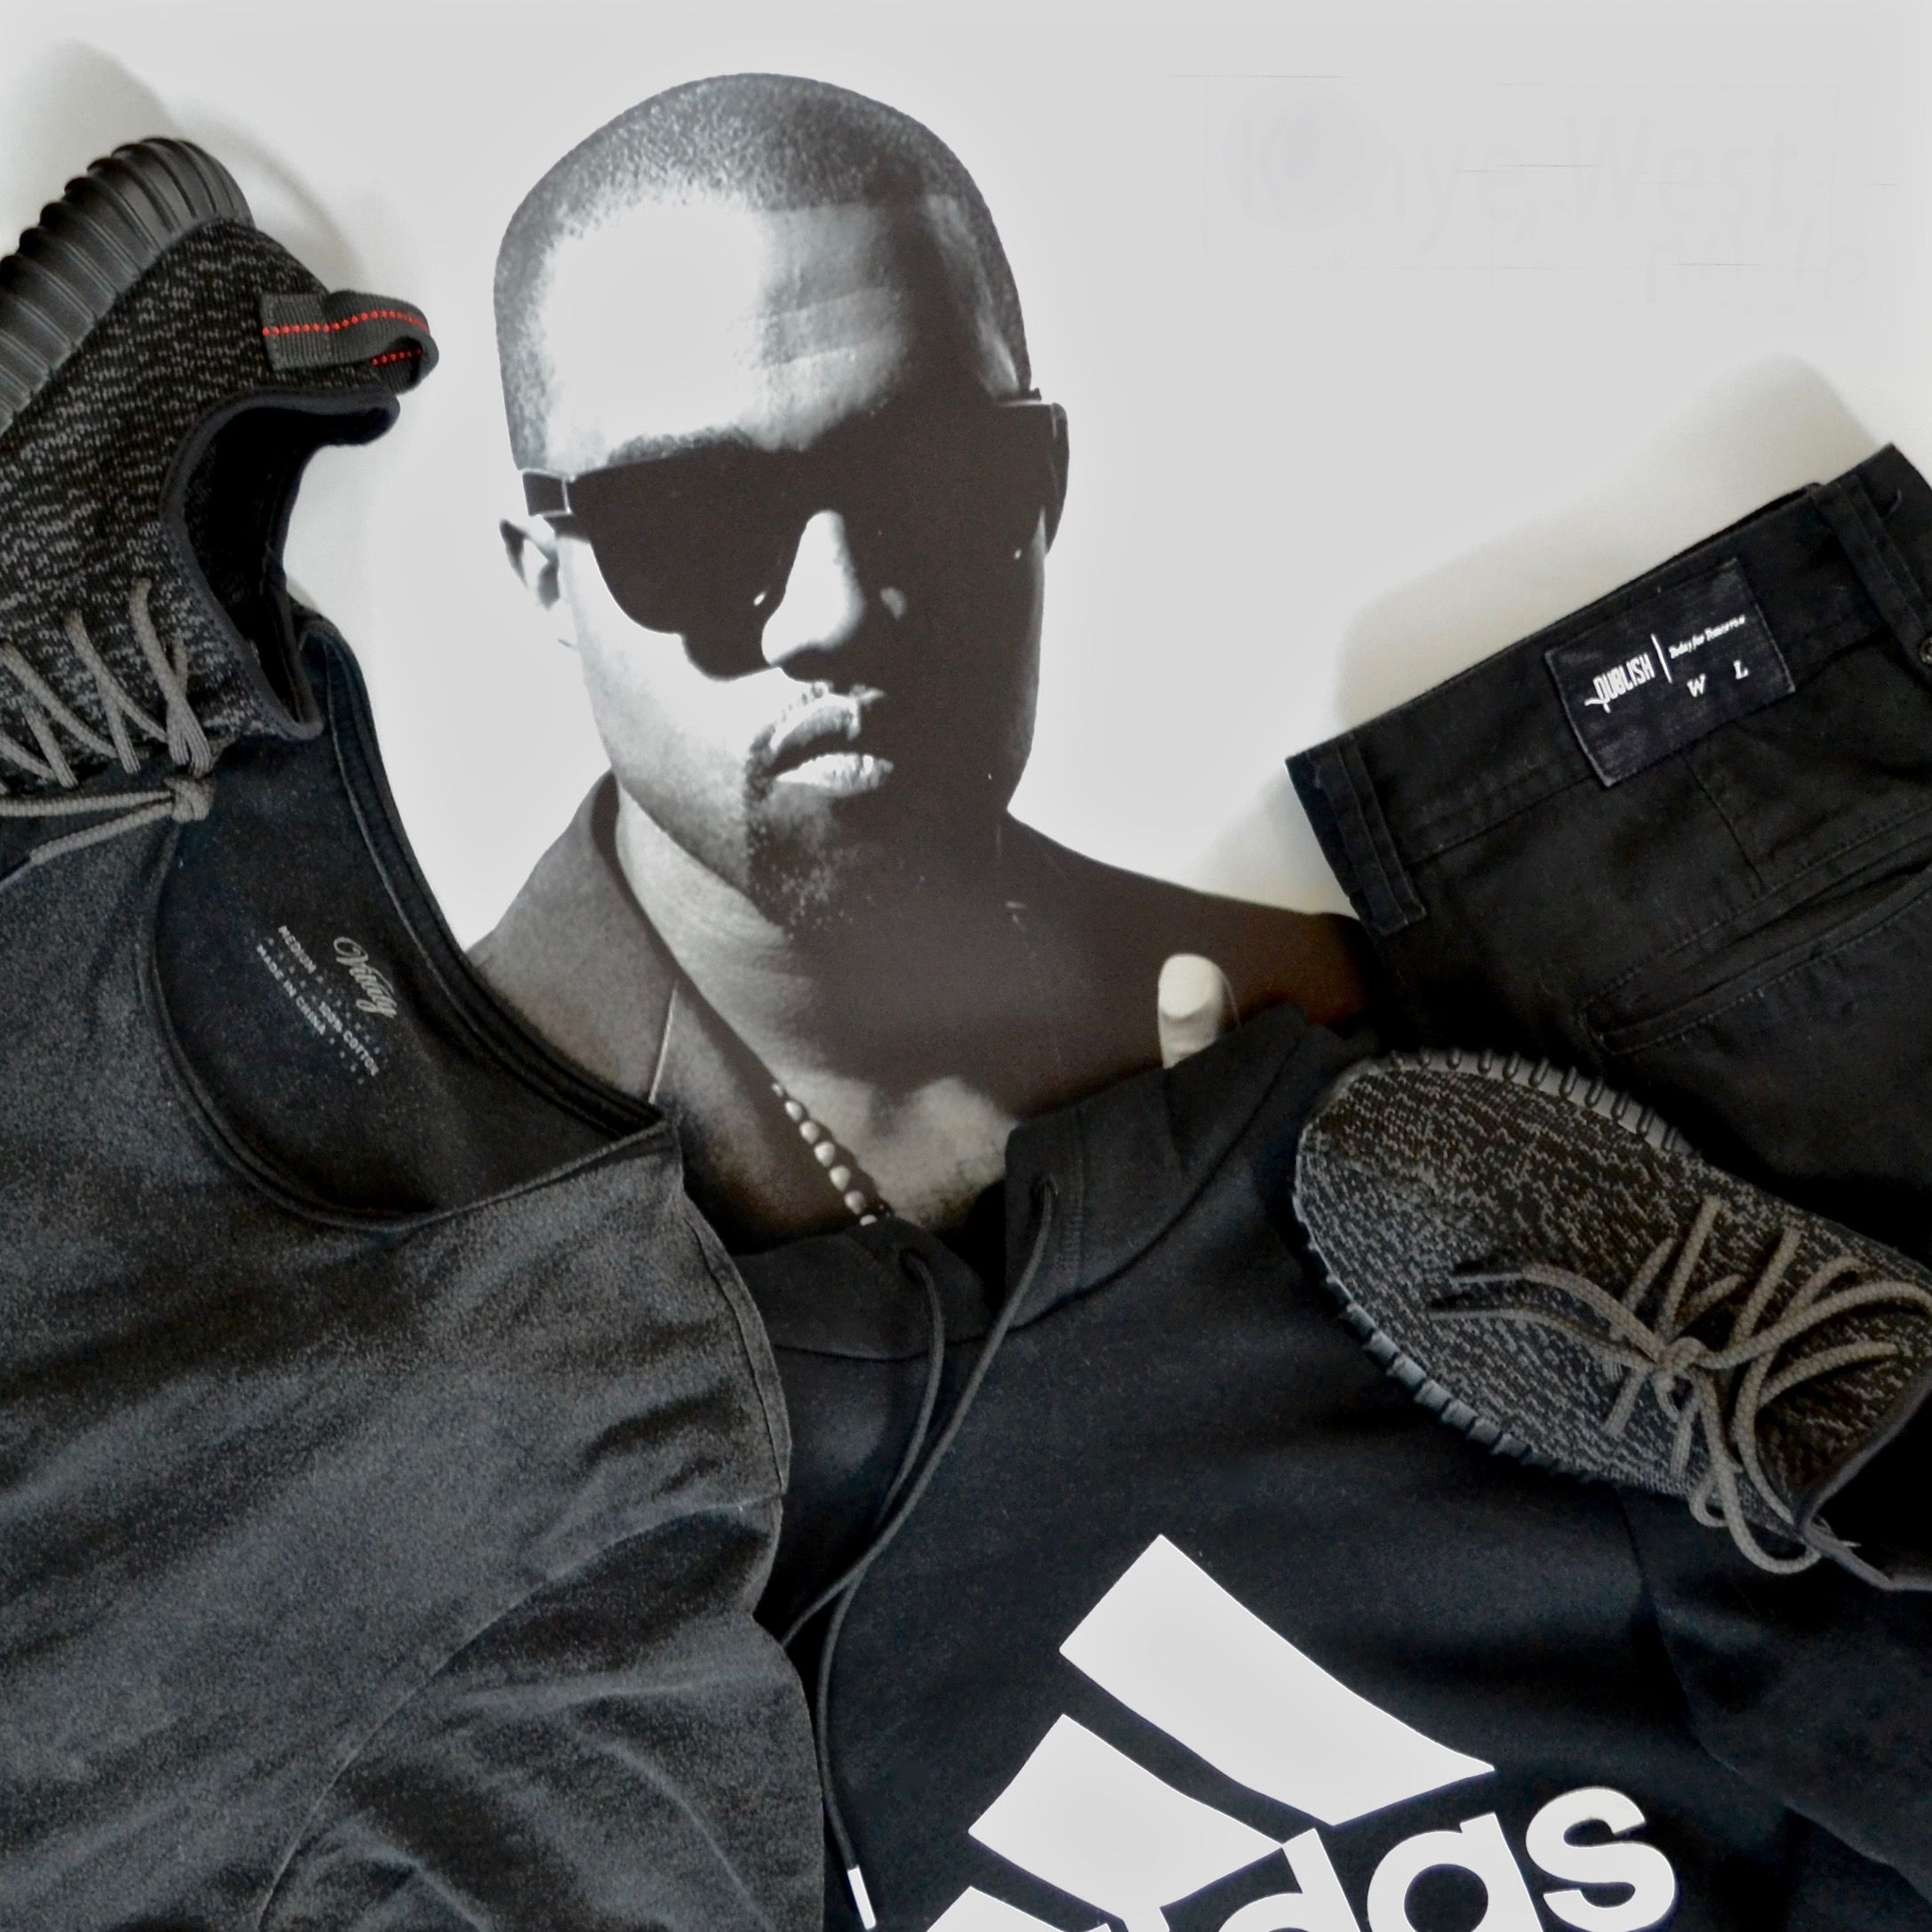 c2b02fe402c252 ... Shirt ... adidas Yeezy 350 Boost Yeezy boost pirate black · Mr.West is  ...